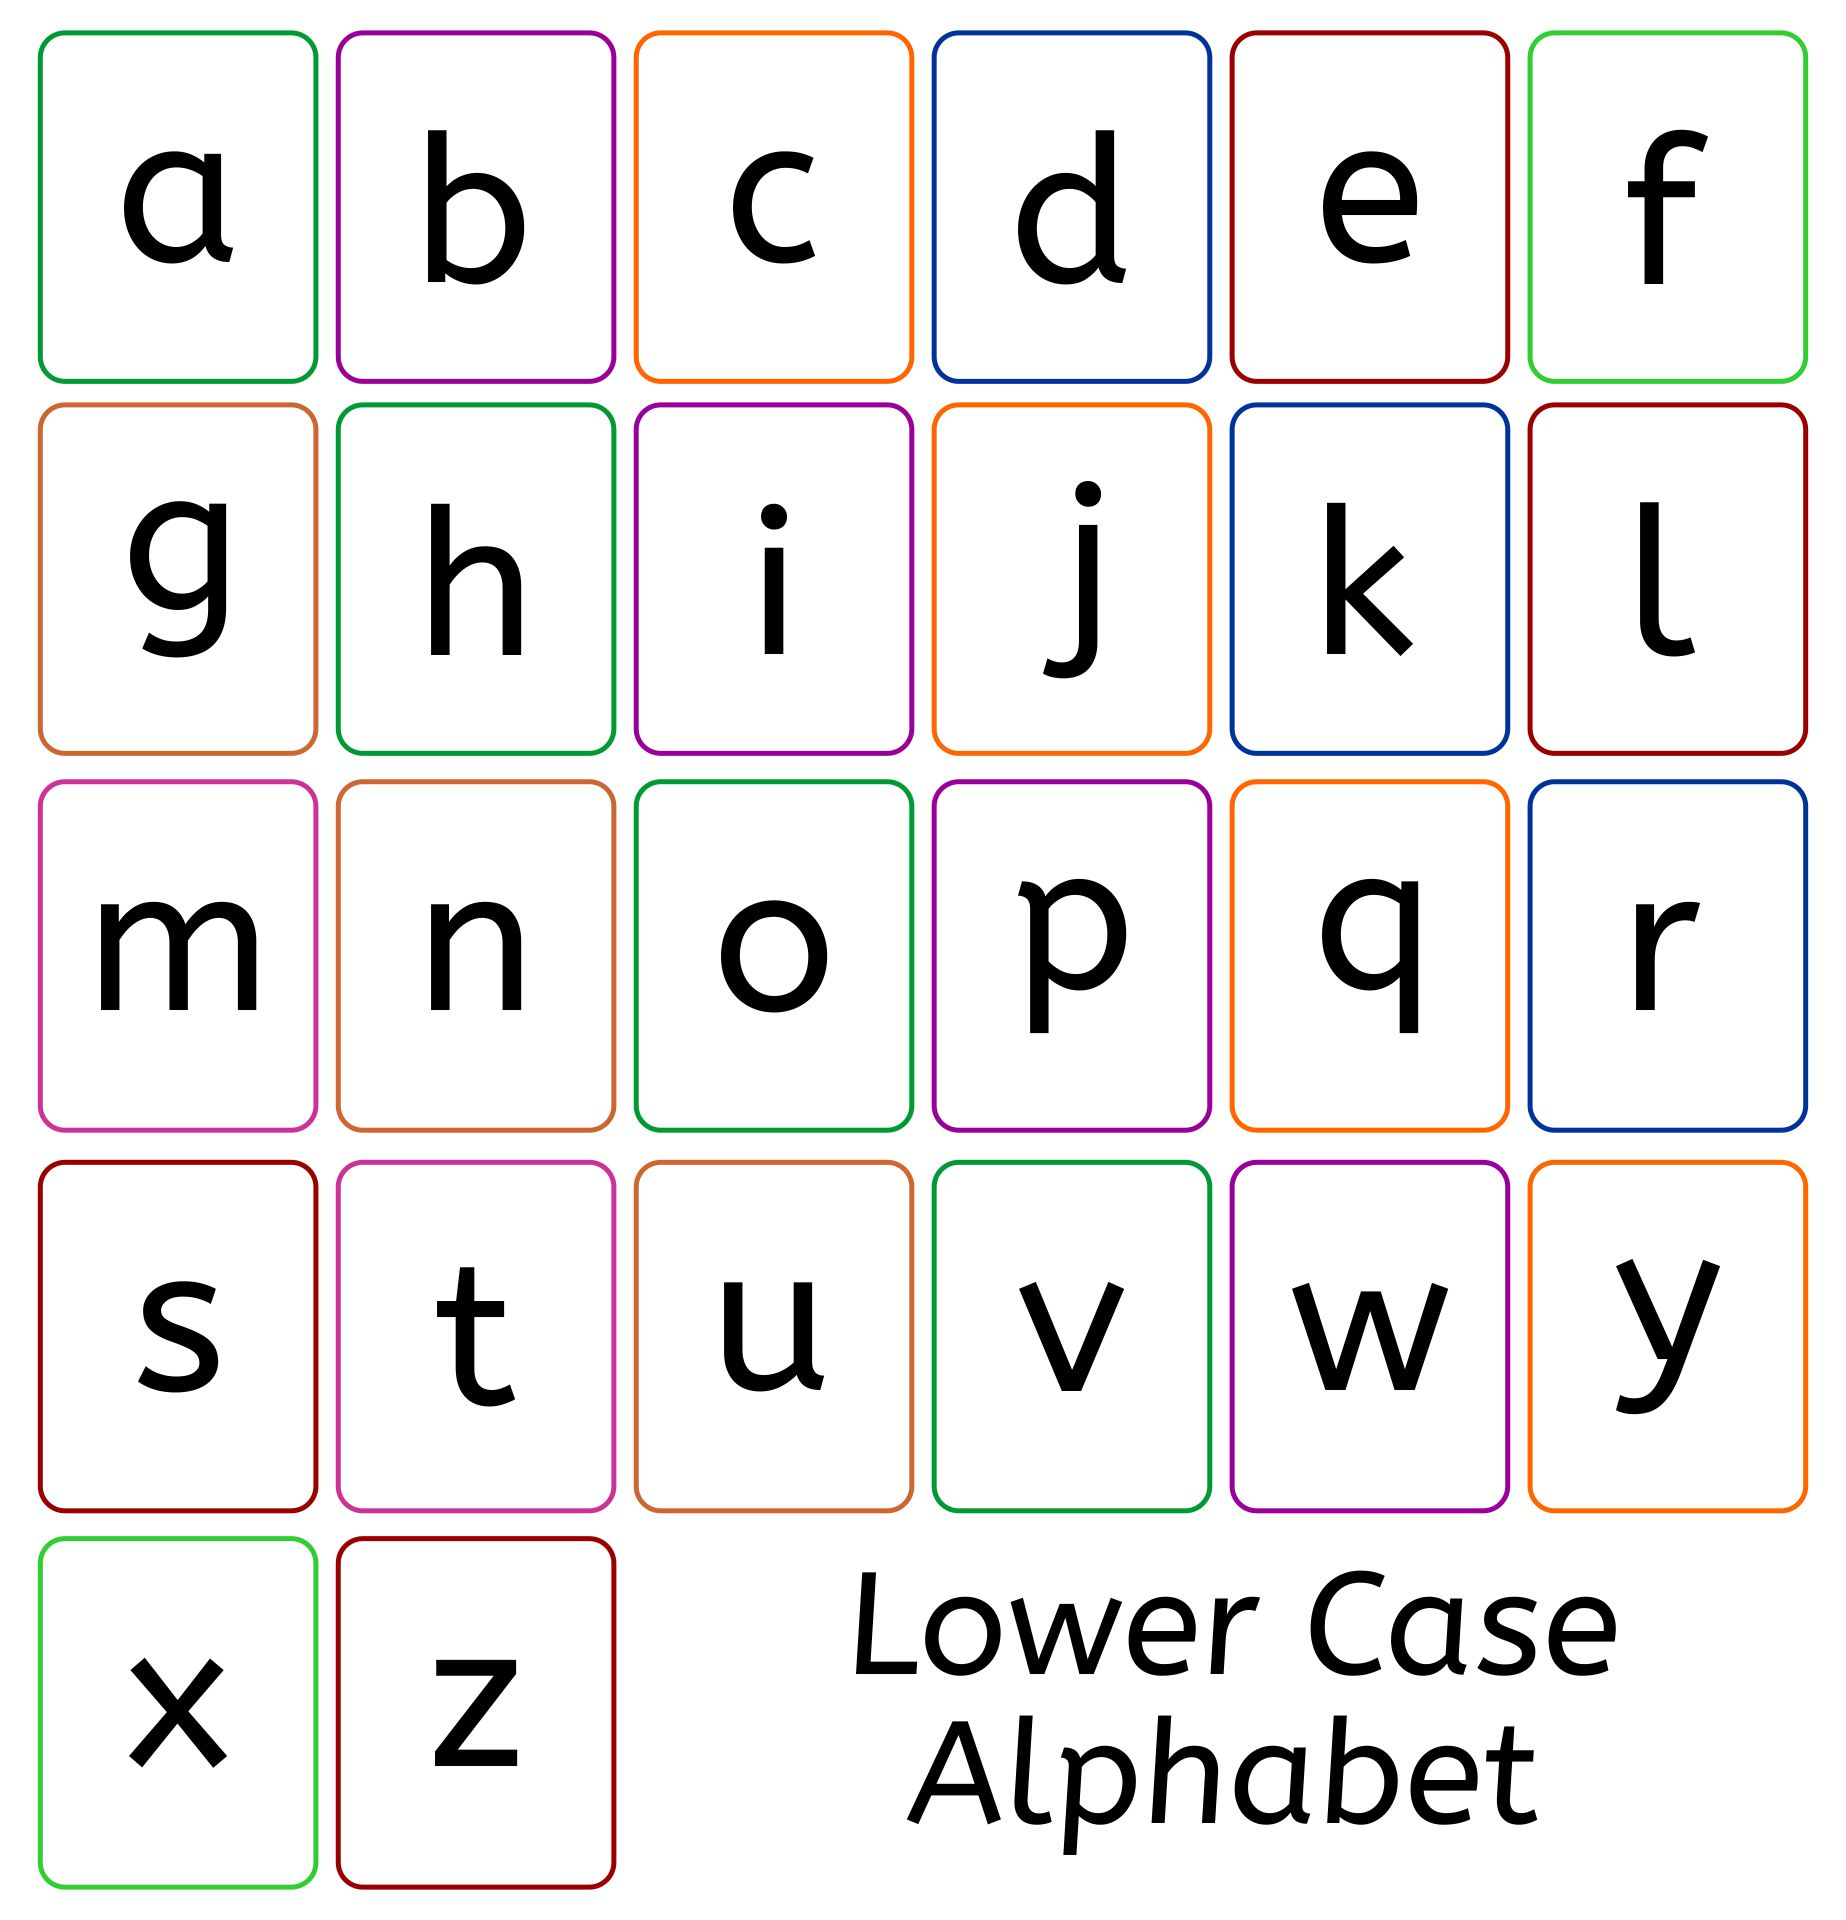 Letter Lower Case Alphabet Flash Cards Printable